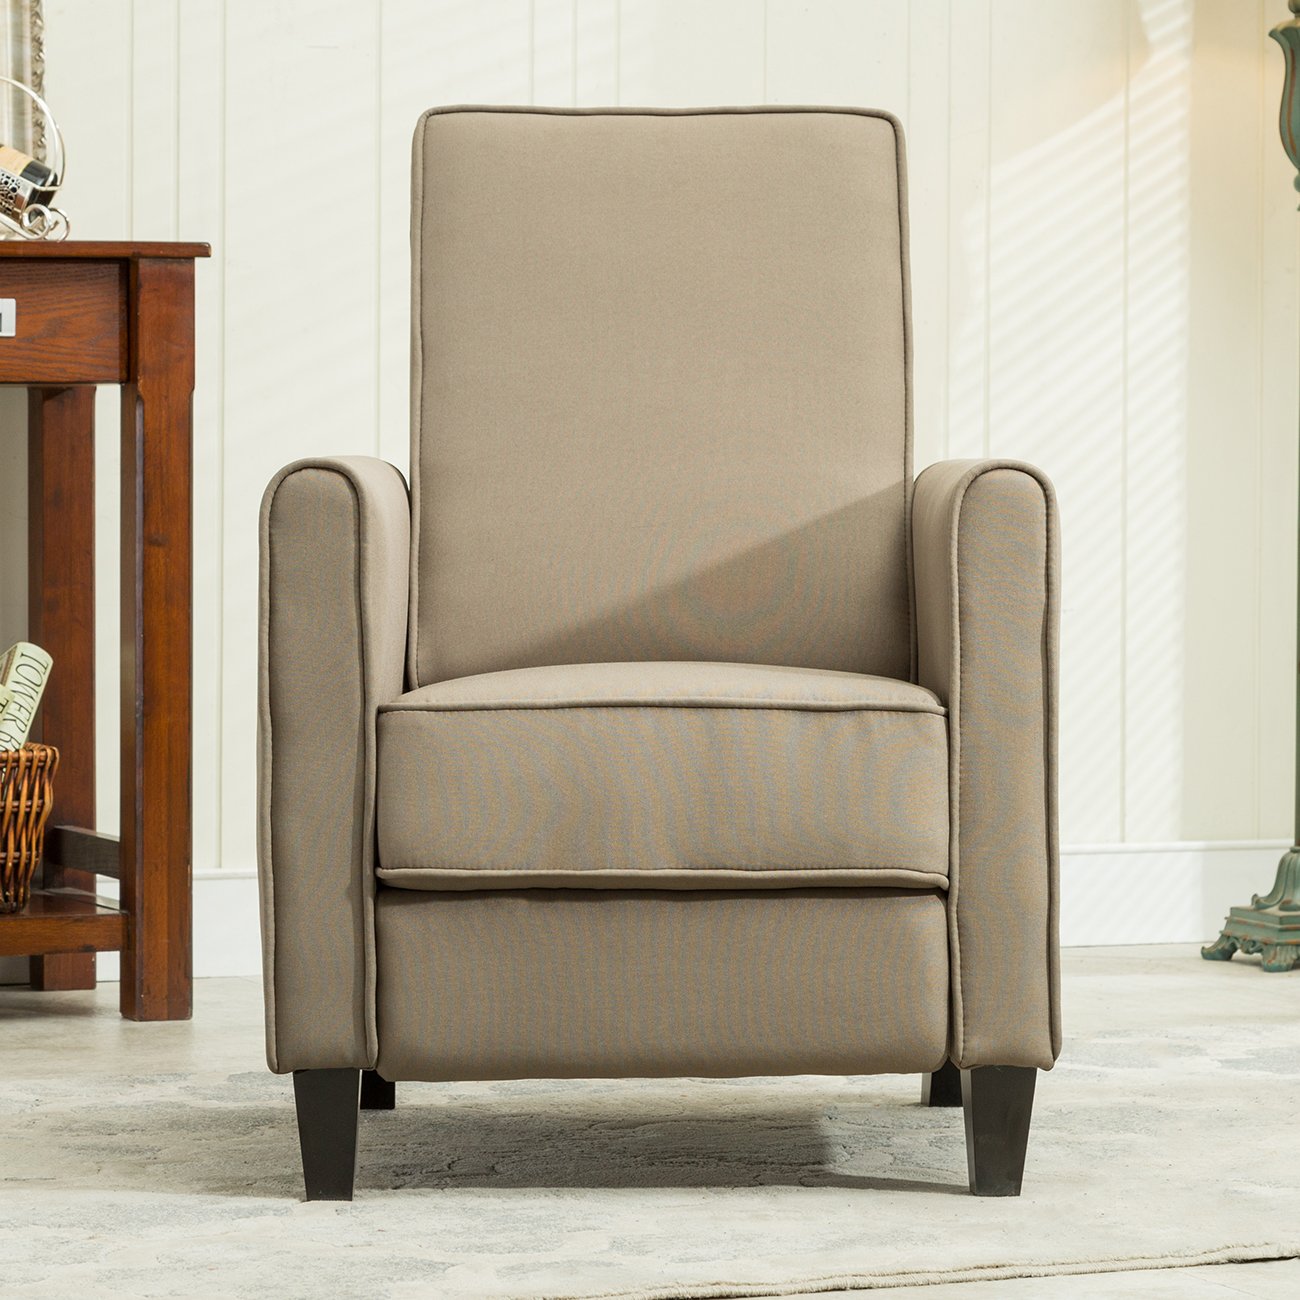 Gray Recliner Chair Recliner Club Chair Living Room Home Modern Design Recline